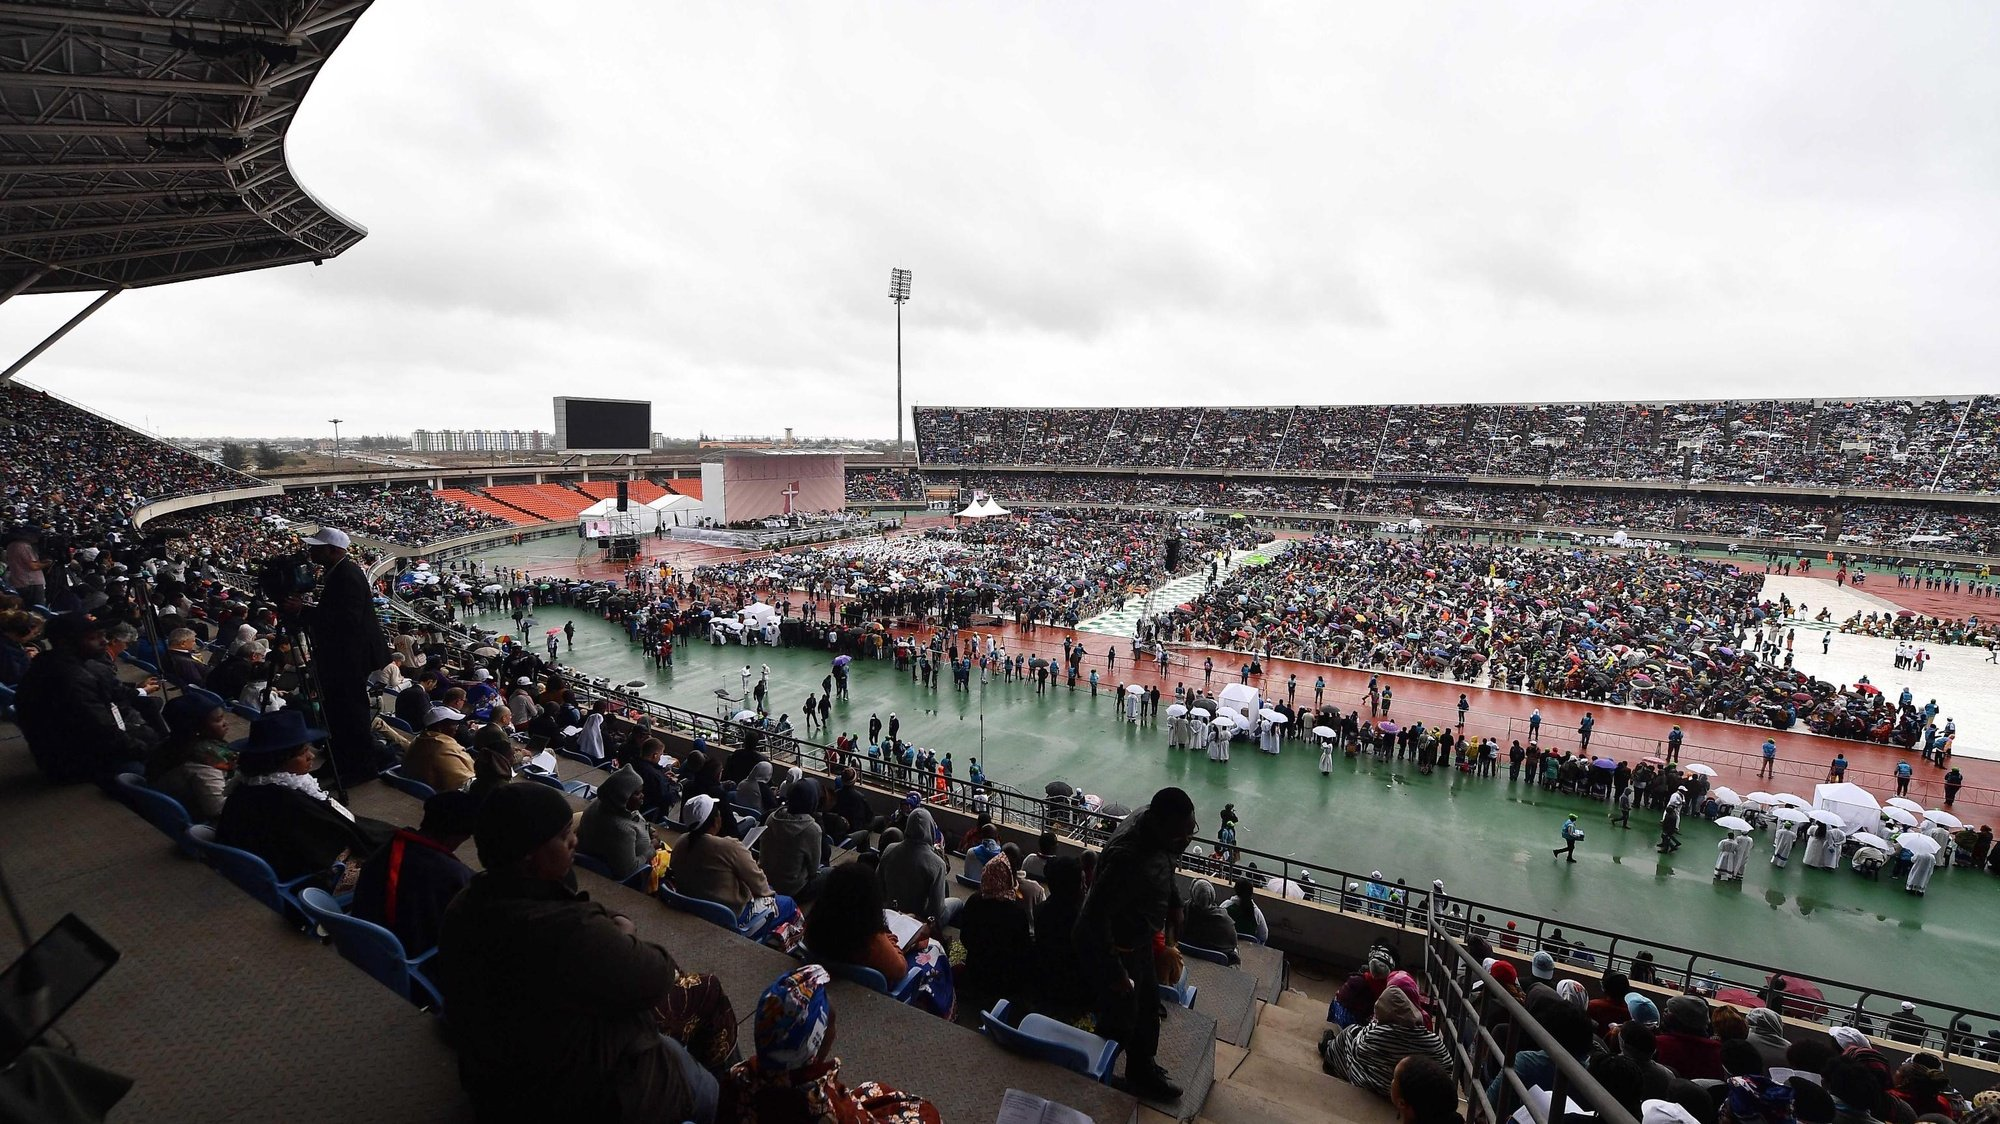 epa07822908 Pope Francis leads a Holy mass at Zimpeto Stadium, Maputo, Mozambique, 06 September 2019. Pope Francis will visit Mozambique, Madagascar, Mauritius on his three-nation trip to Africa, from 04 to 10 September 2019.  EPA/LUCA ZENNARO